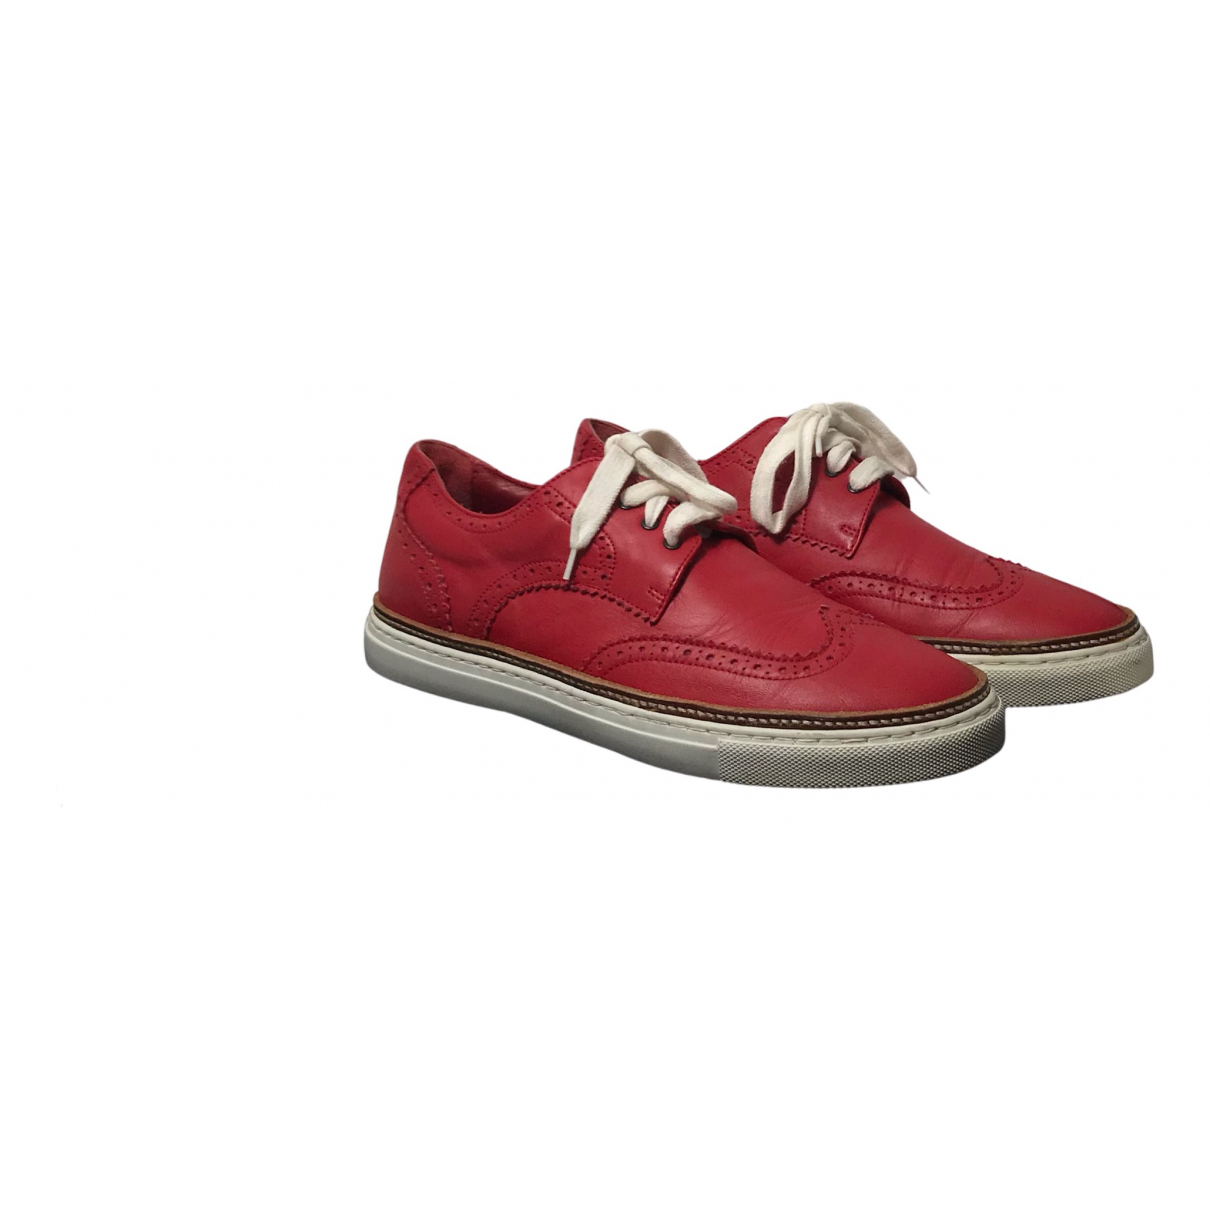 Dsquared2 N Red Patent leather Trainers for Men 10 UK